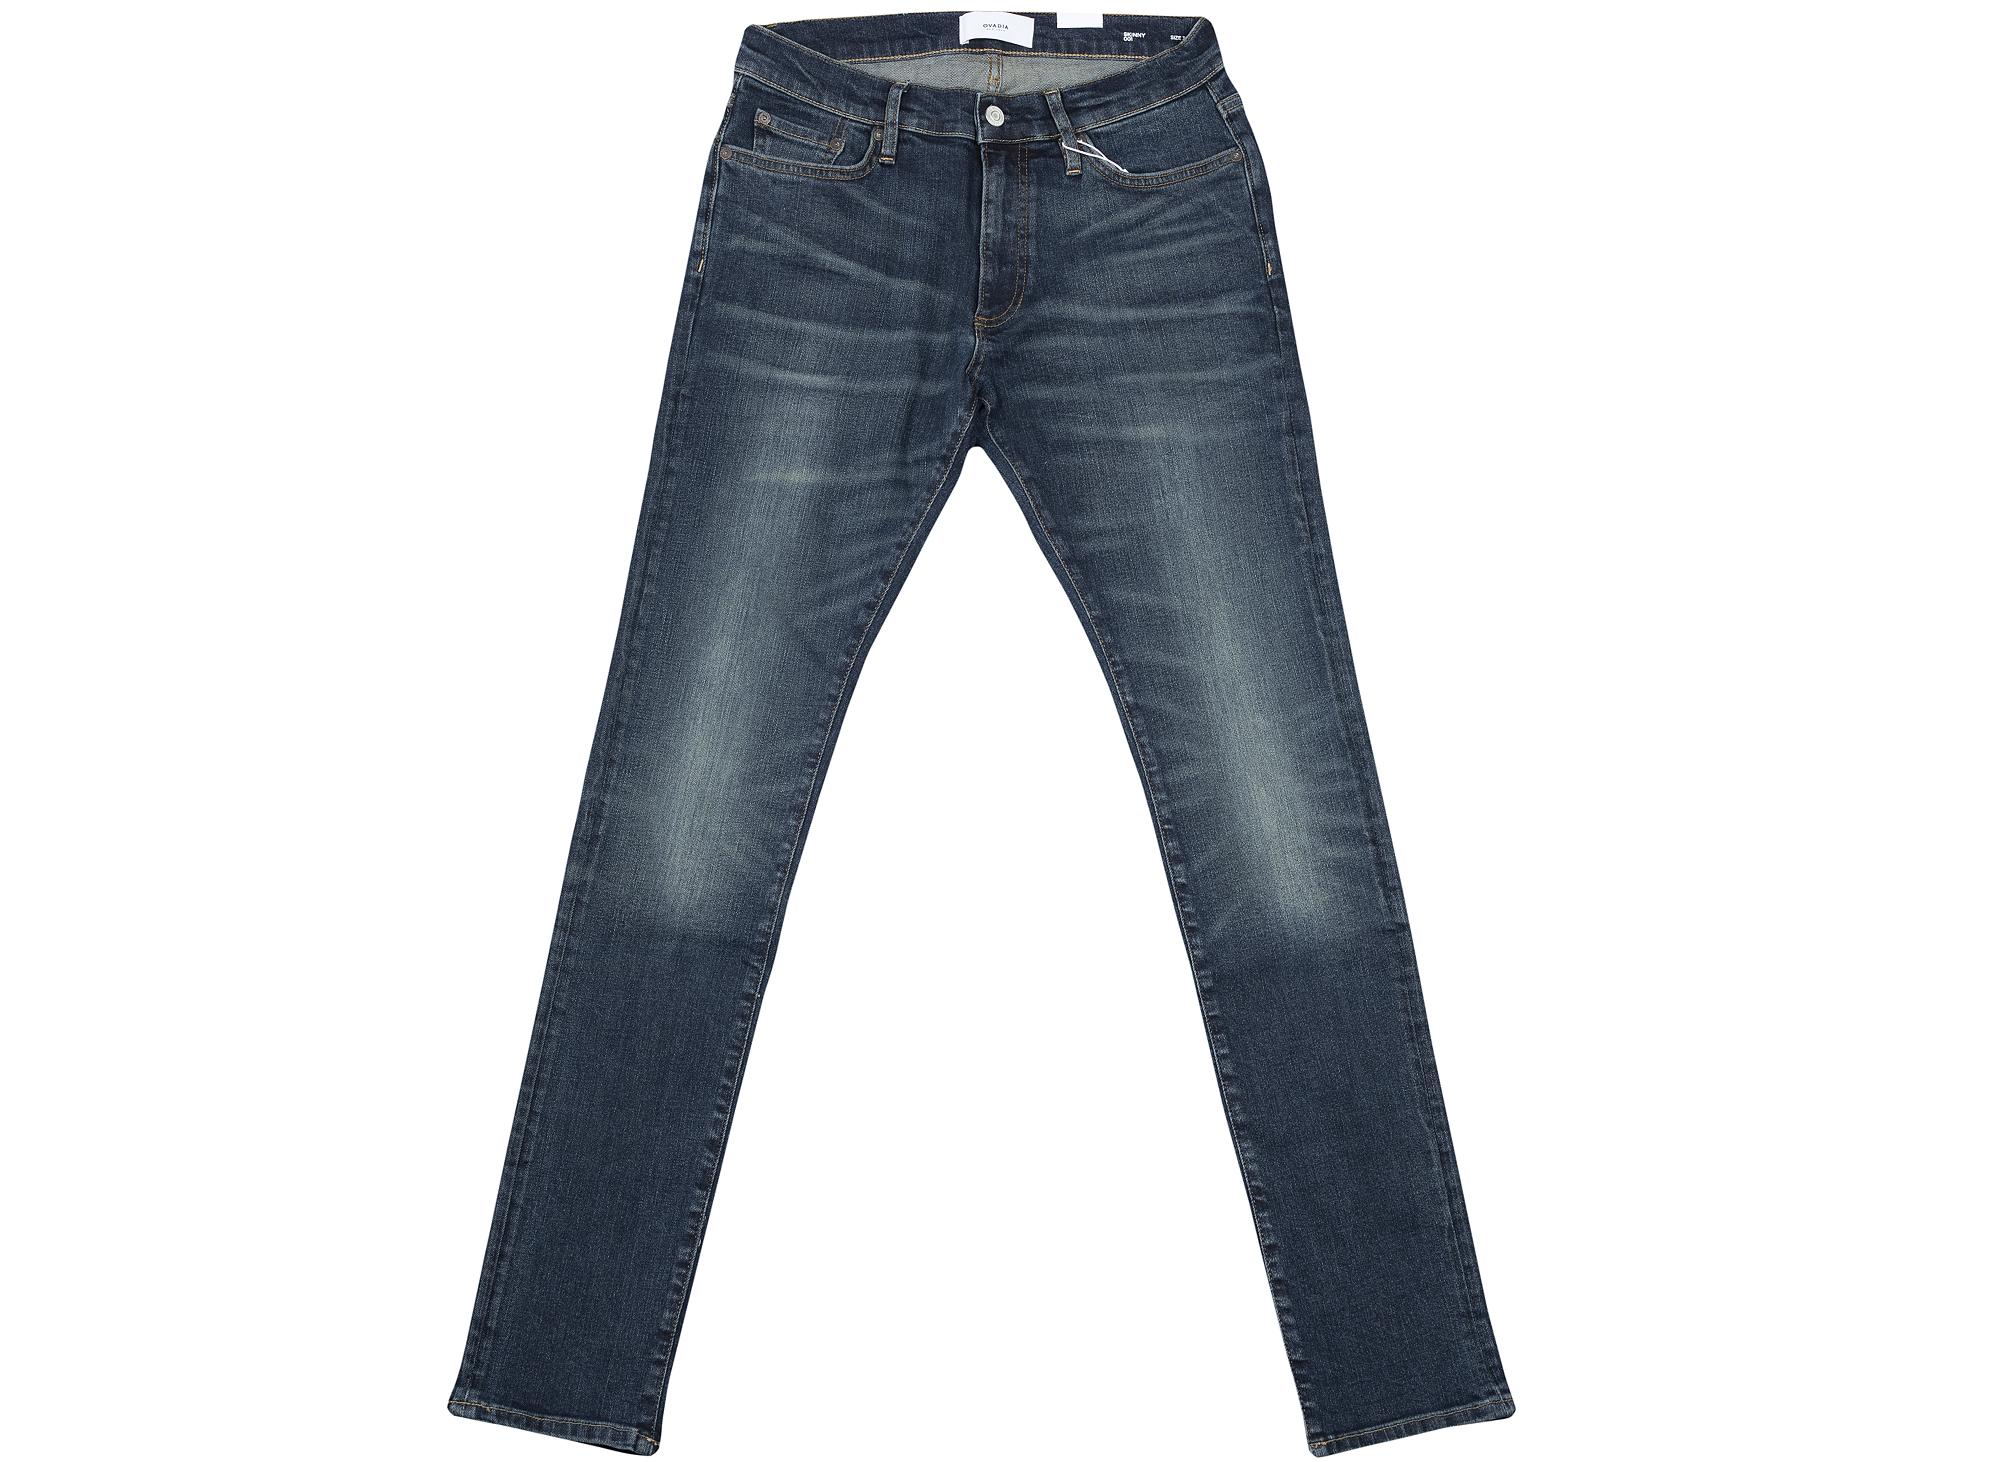 Ovadia and Sons Dark Washed Skinny Denim